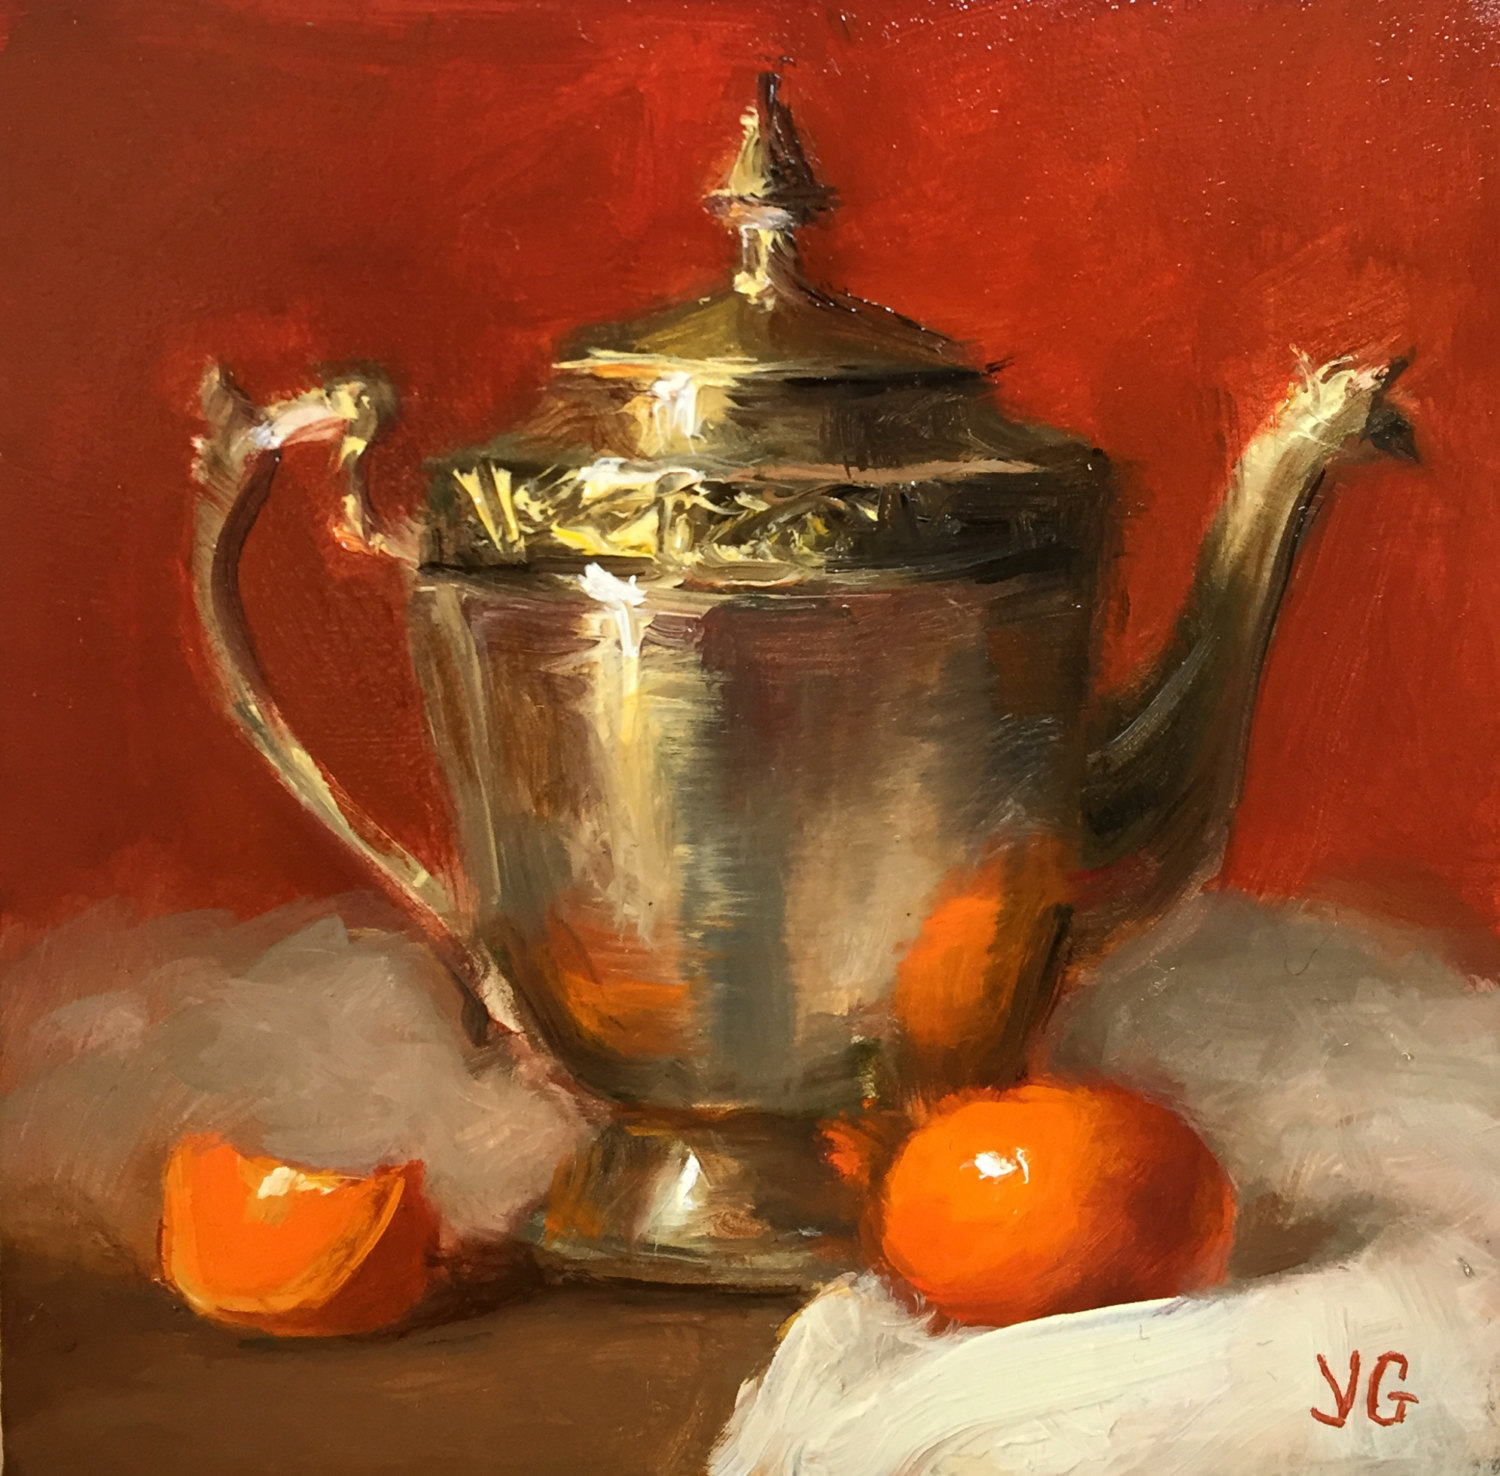 Metal pitcher and tangerine. Oil on board. 5*5